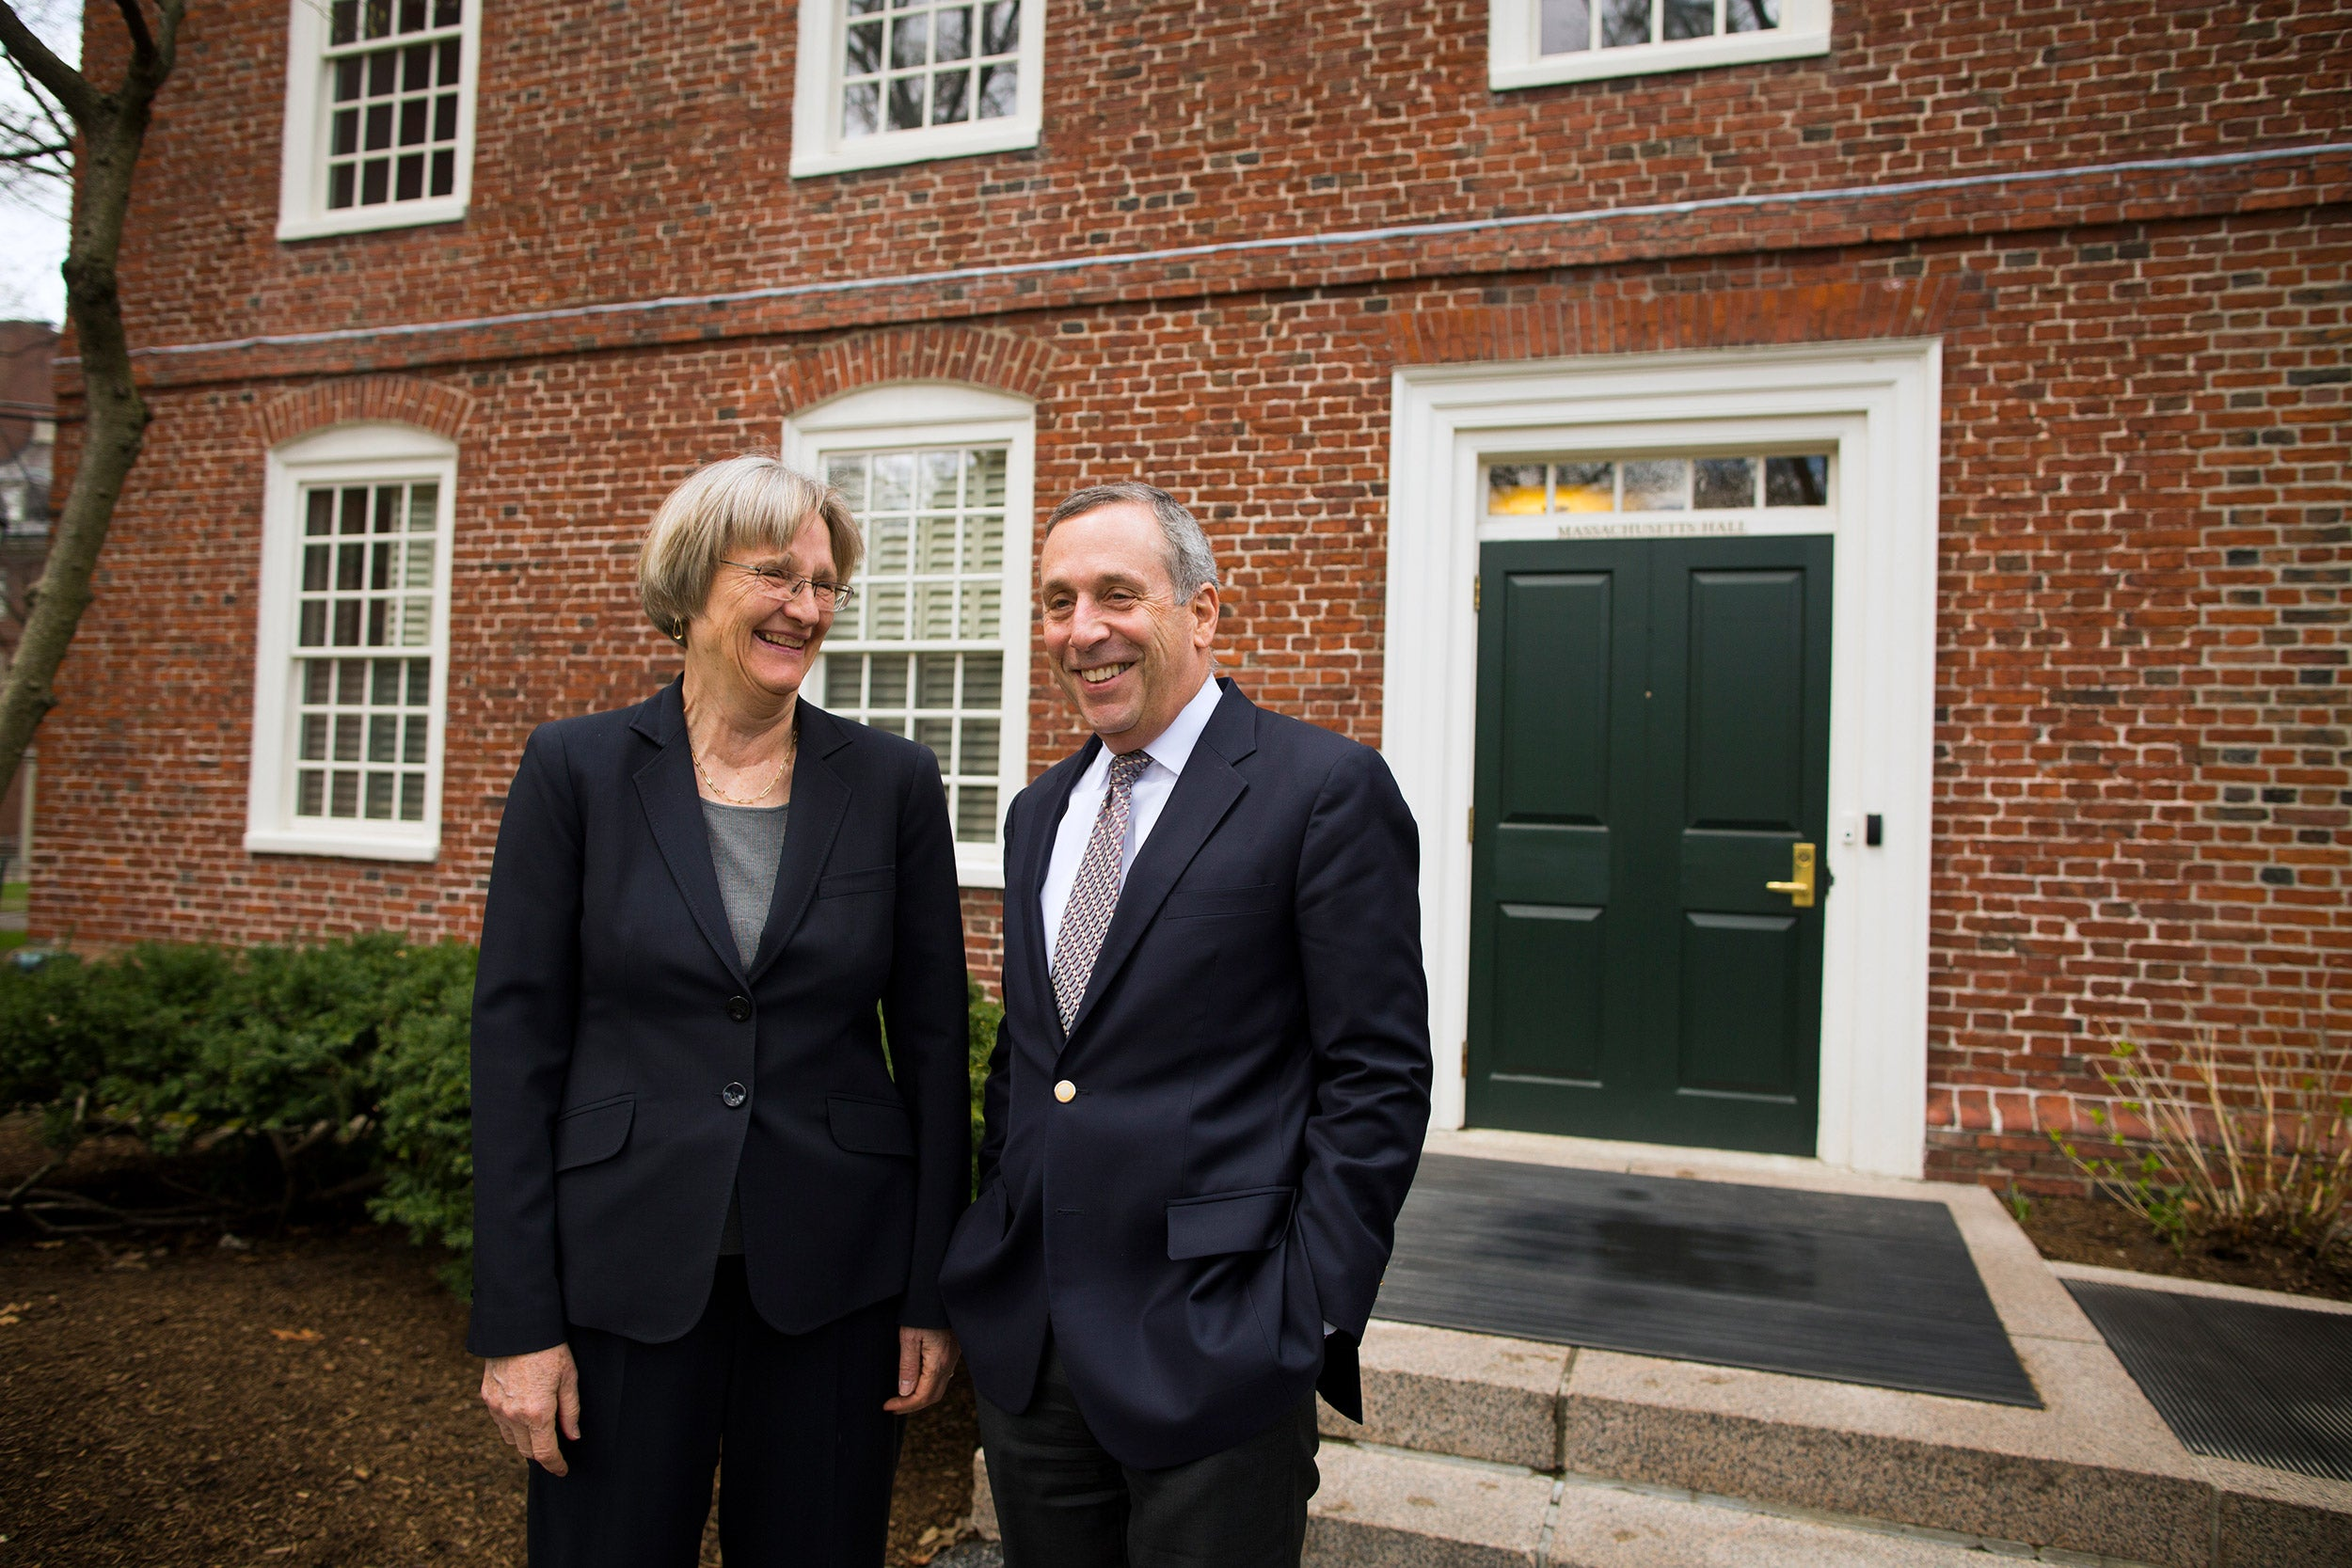 Harvard President Drew Faust (left) and Harvard President-elect Lawrence Bacow speak outside of Massachusetts Hall at Harvard University.